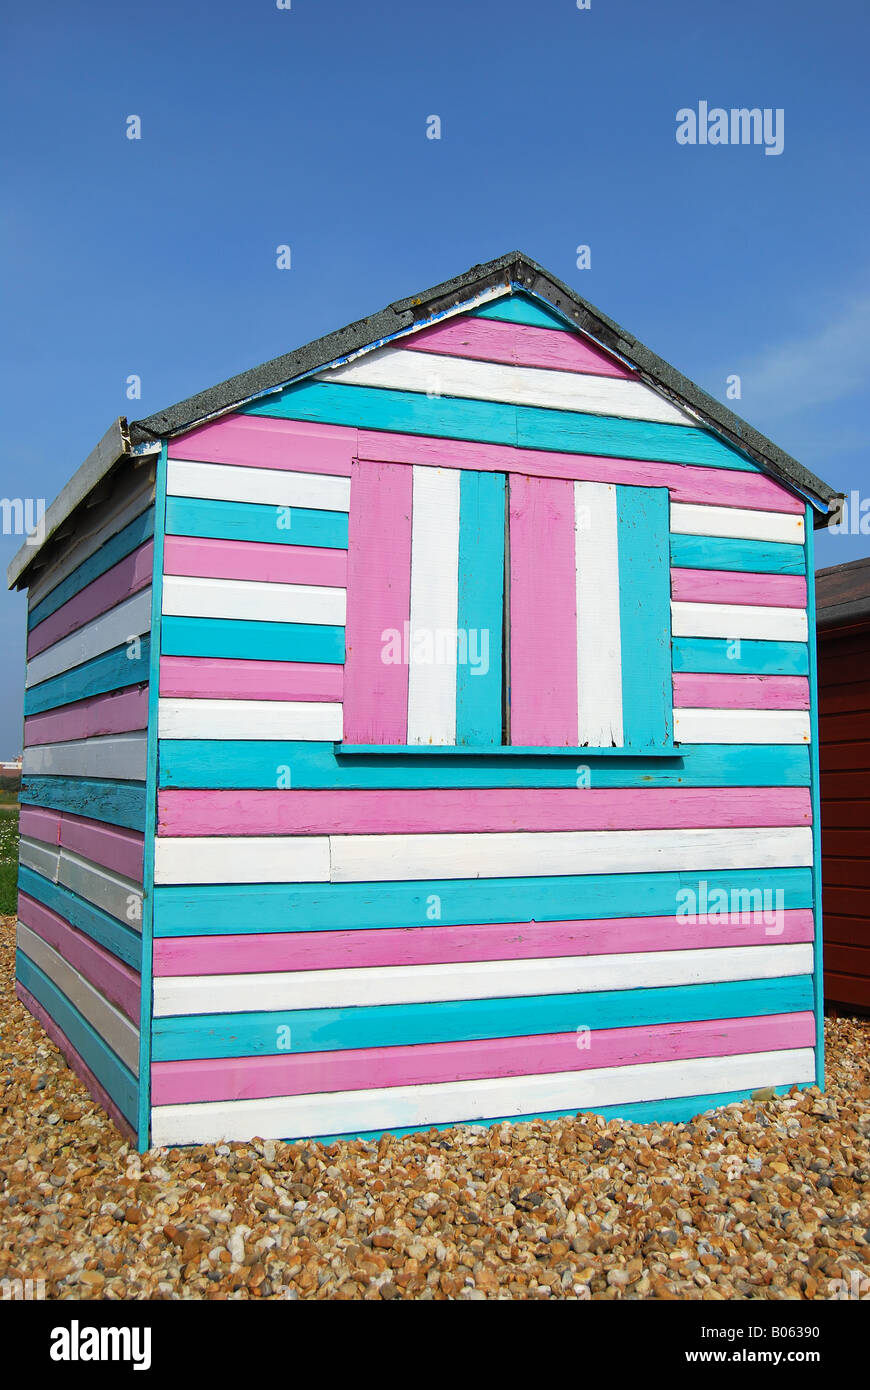 Colourful beach hut, Hayling Island, Hampshire, England, United Kingdom - Stock Image